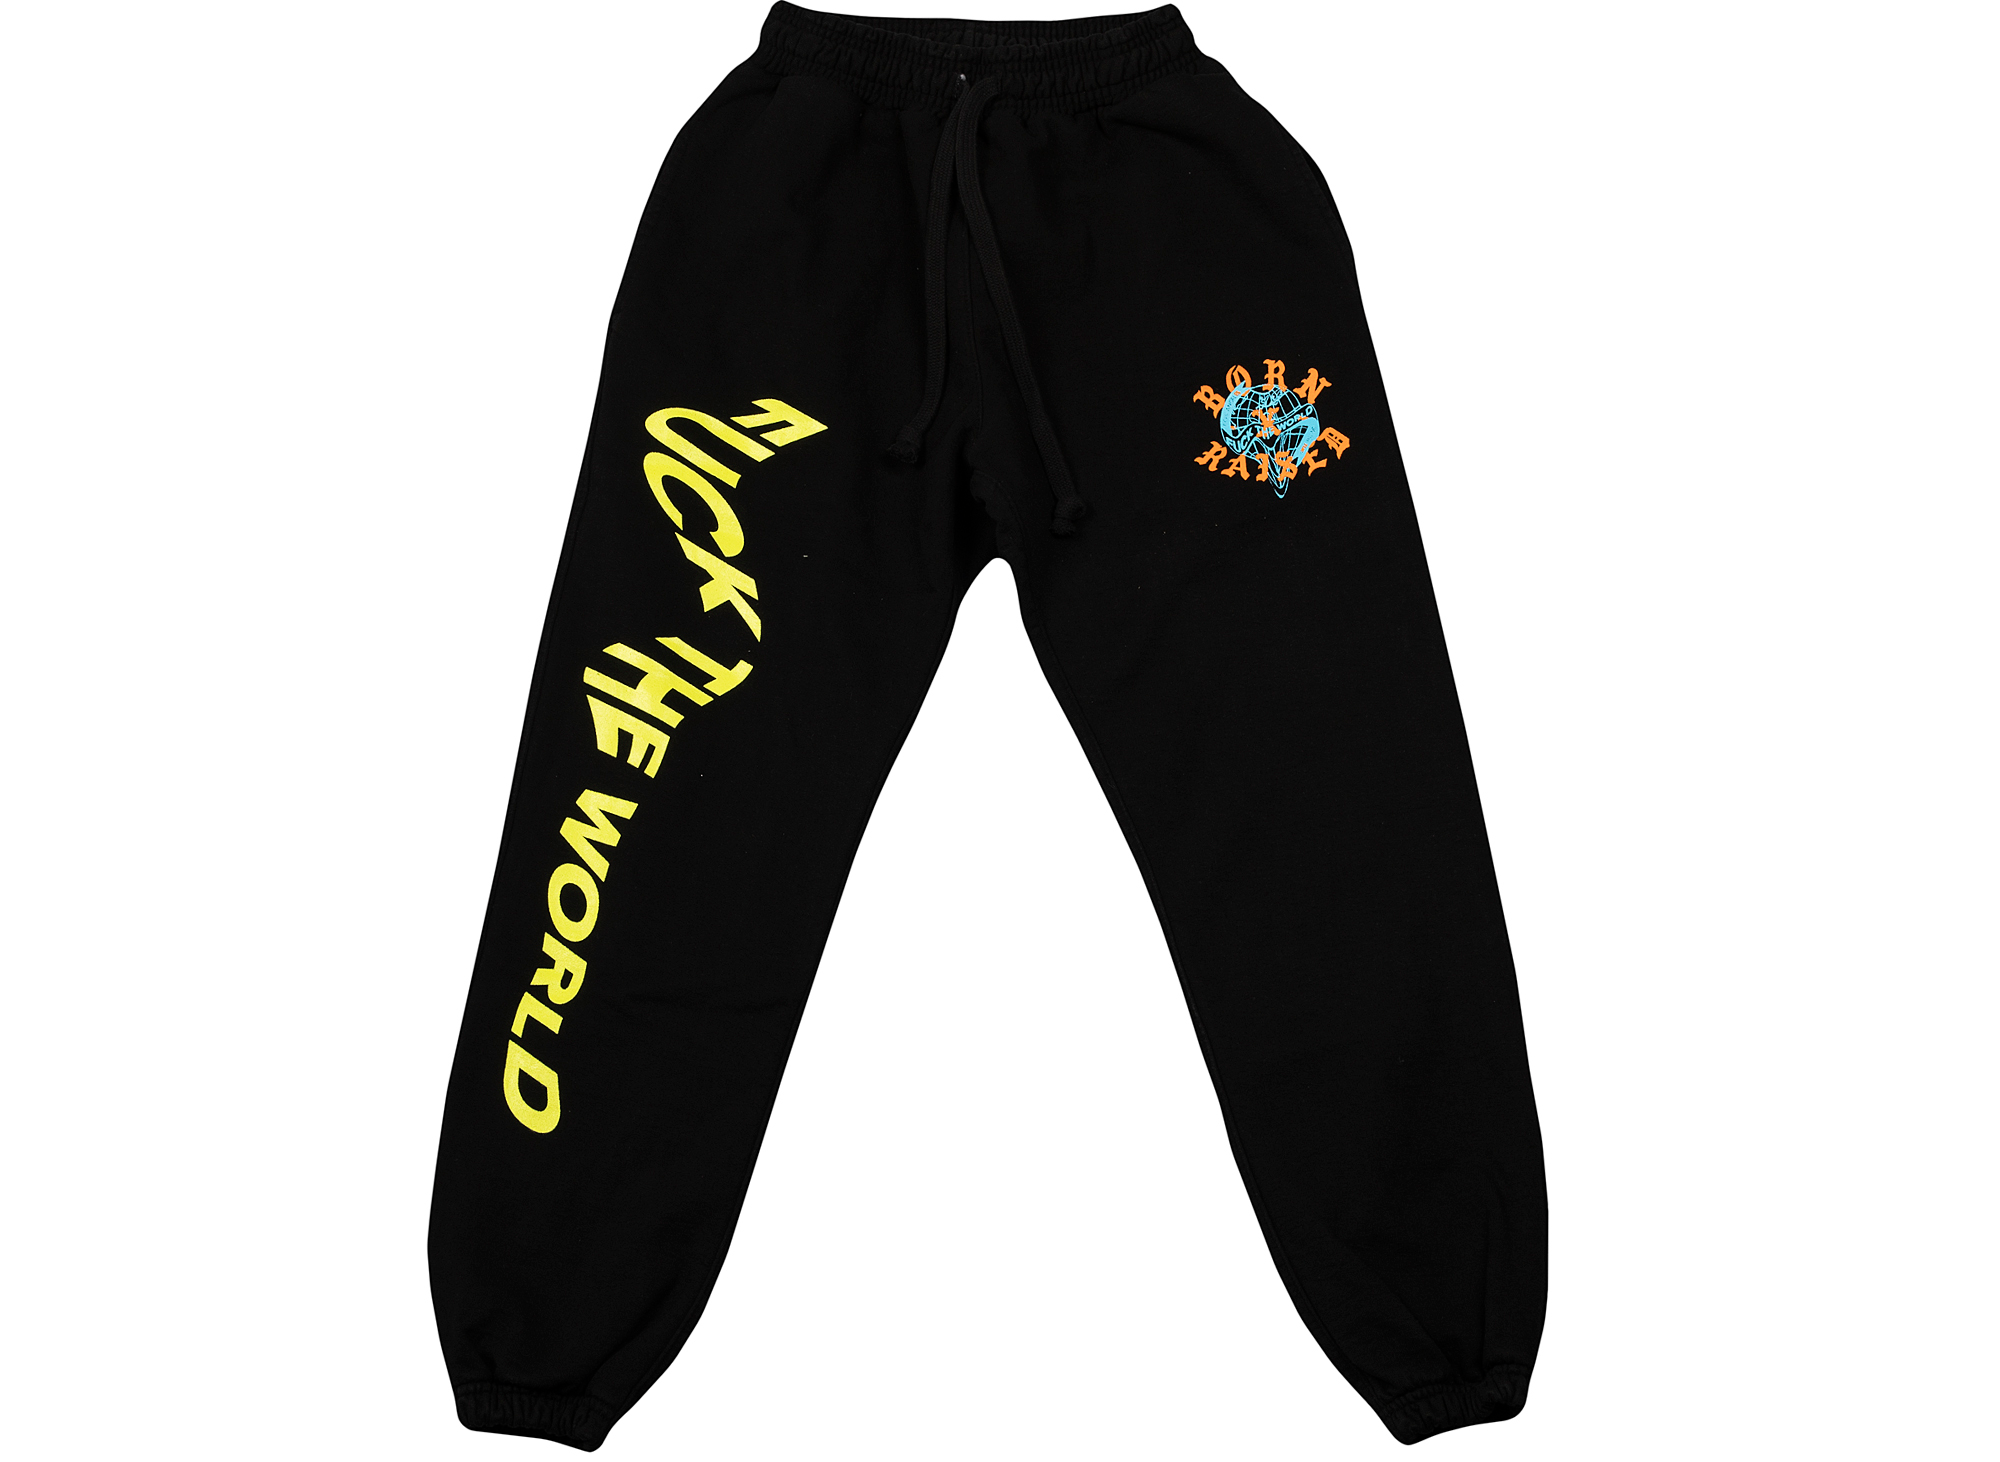 Born x Raised Fuck the World Sweatpants